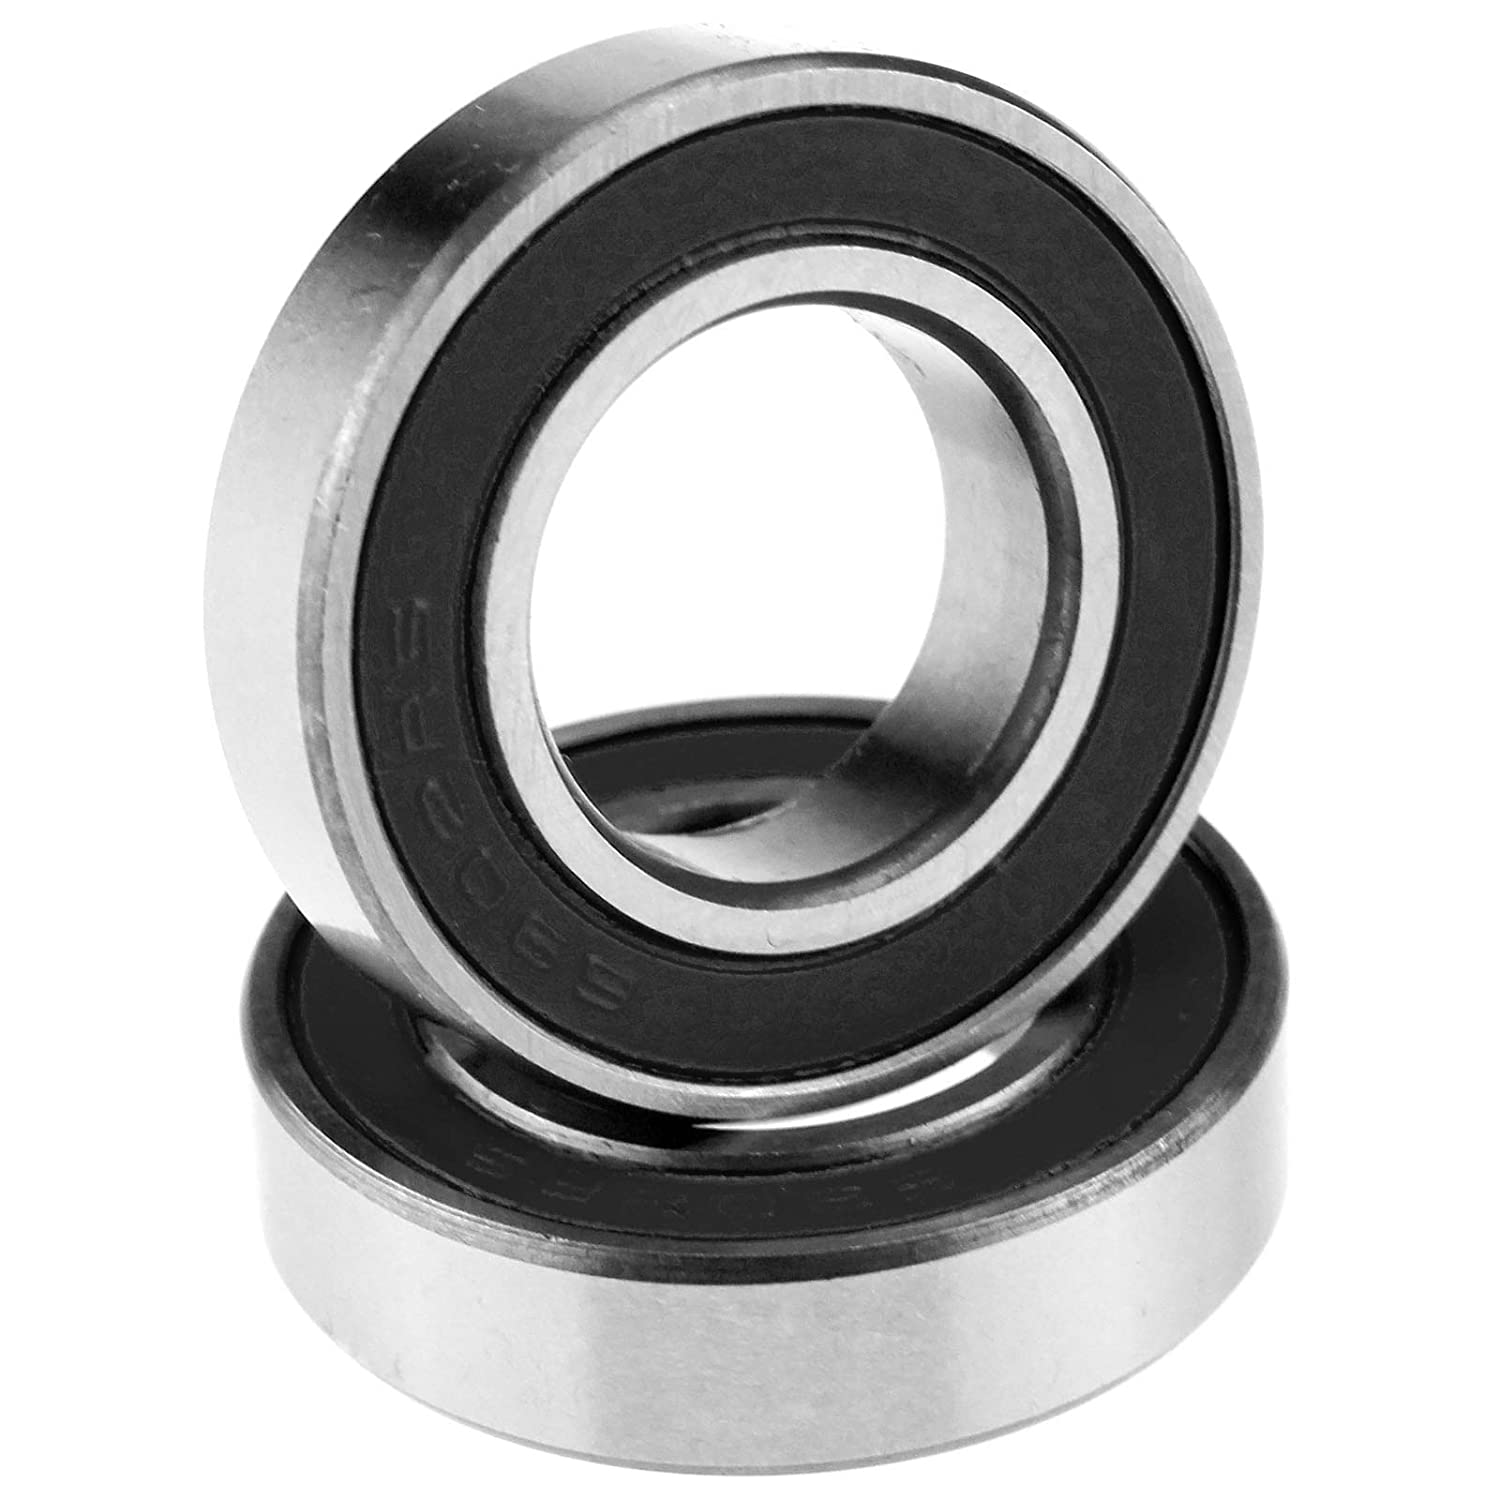 ENET 15x28x7mm Thin Section Sealed High Performance Bearing 6902 2RS Rubber Sealed